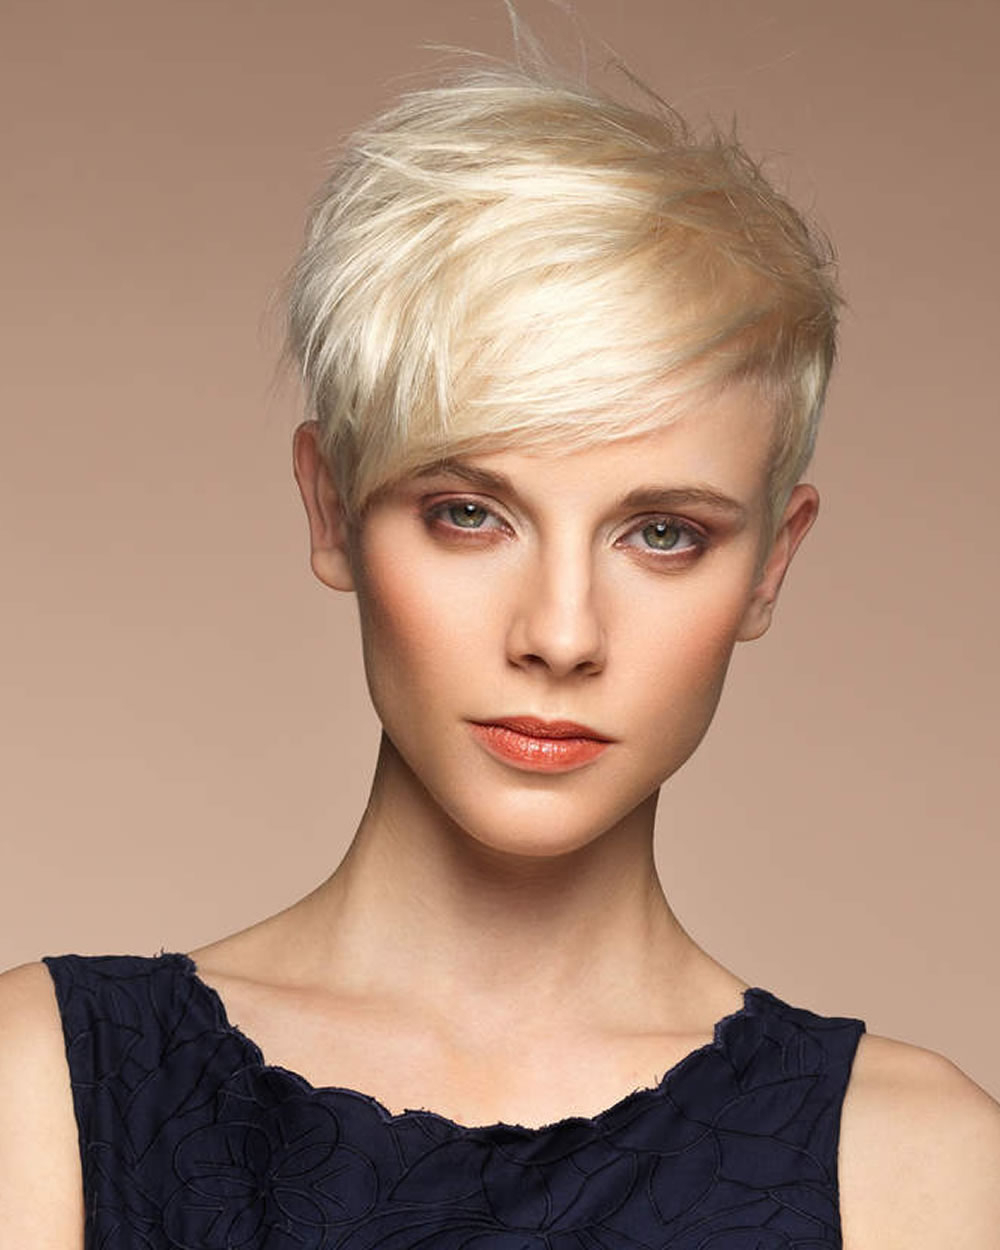 Well Known Pixie Cut Hairstyles For Curly Pixie Hairstyles Haircuts 2017 2018 Trend Short (View 10 of 20)